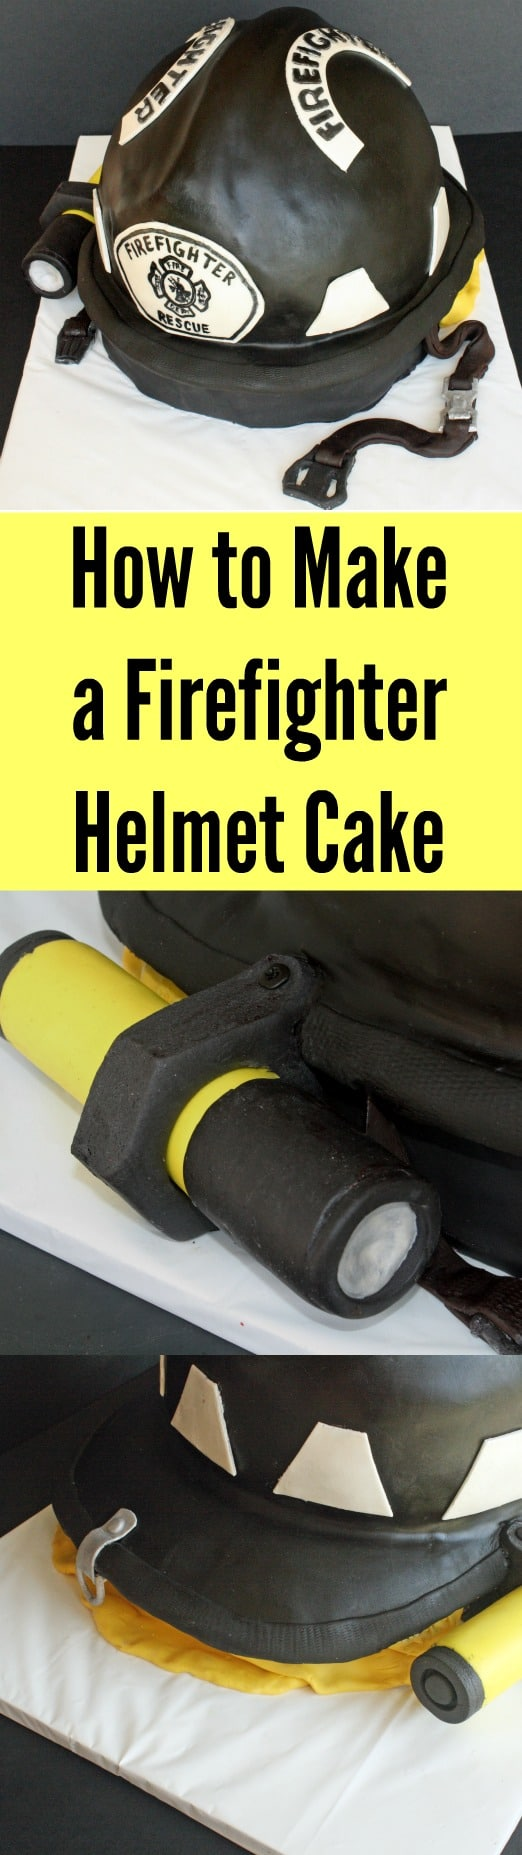 How to Make a Firefighter Helmet Cake